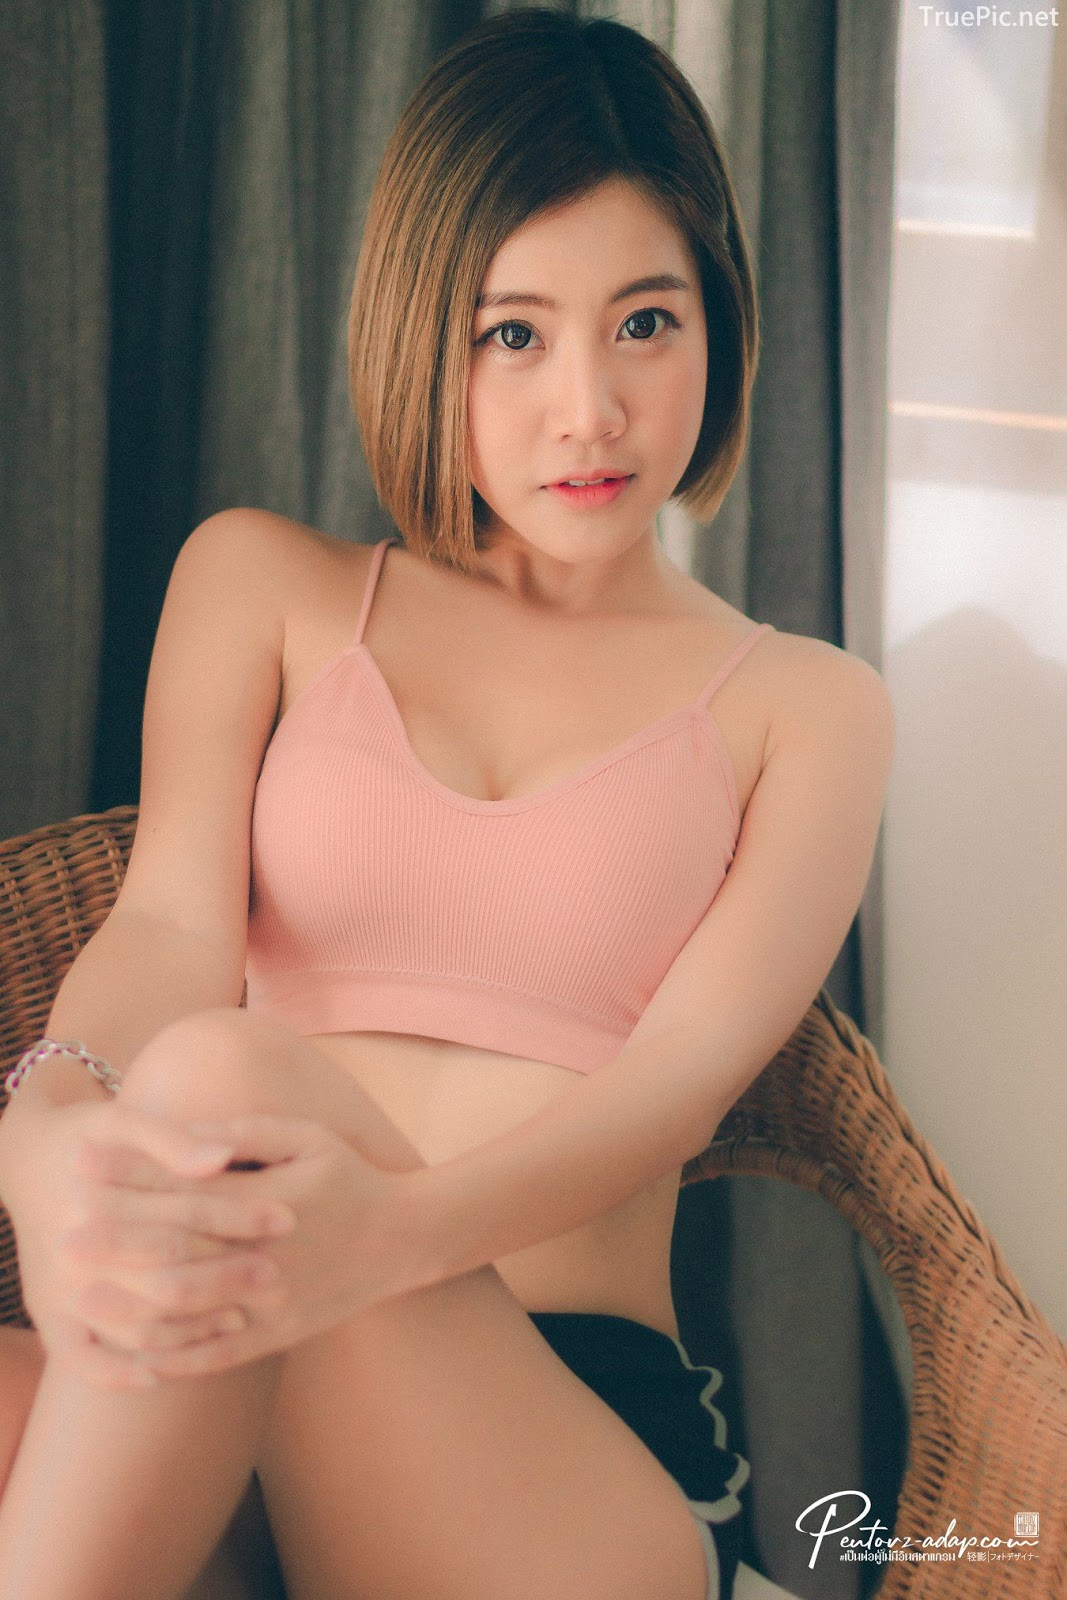 Thailand Cute Model - Fah Chatchaya Suthisuwan - Pink Lovely Fitness Sports Bra - TruePic.net - Picture 6